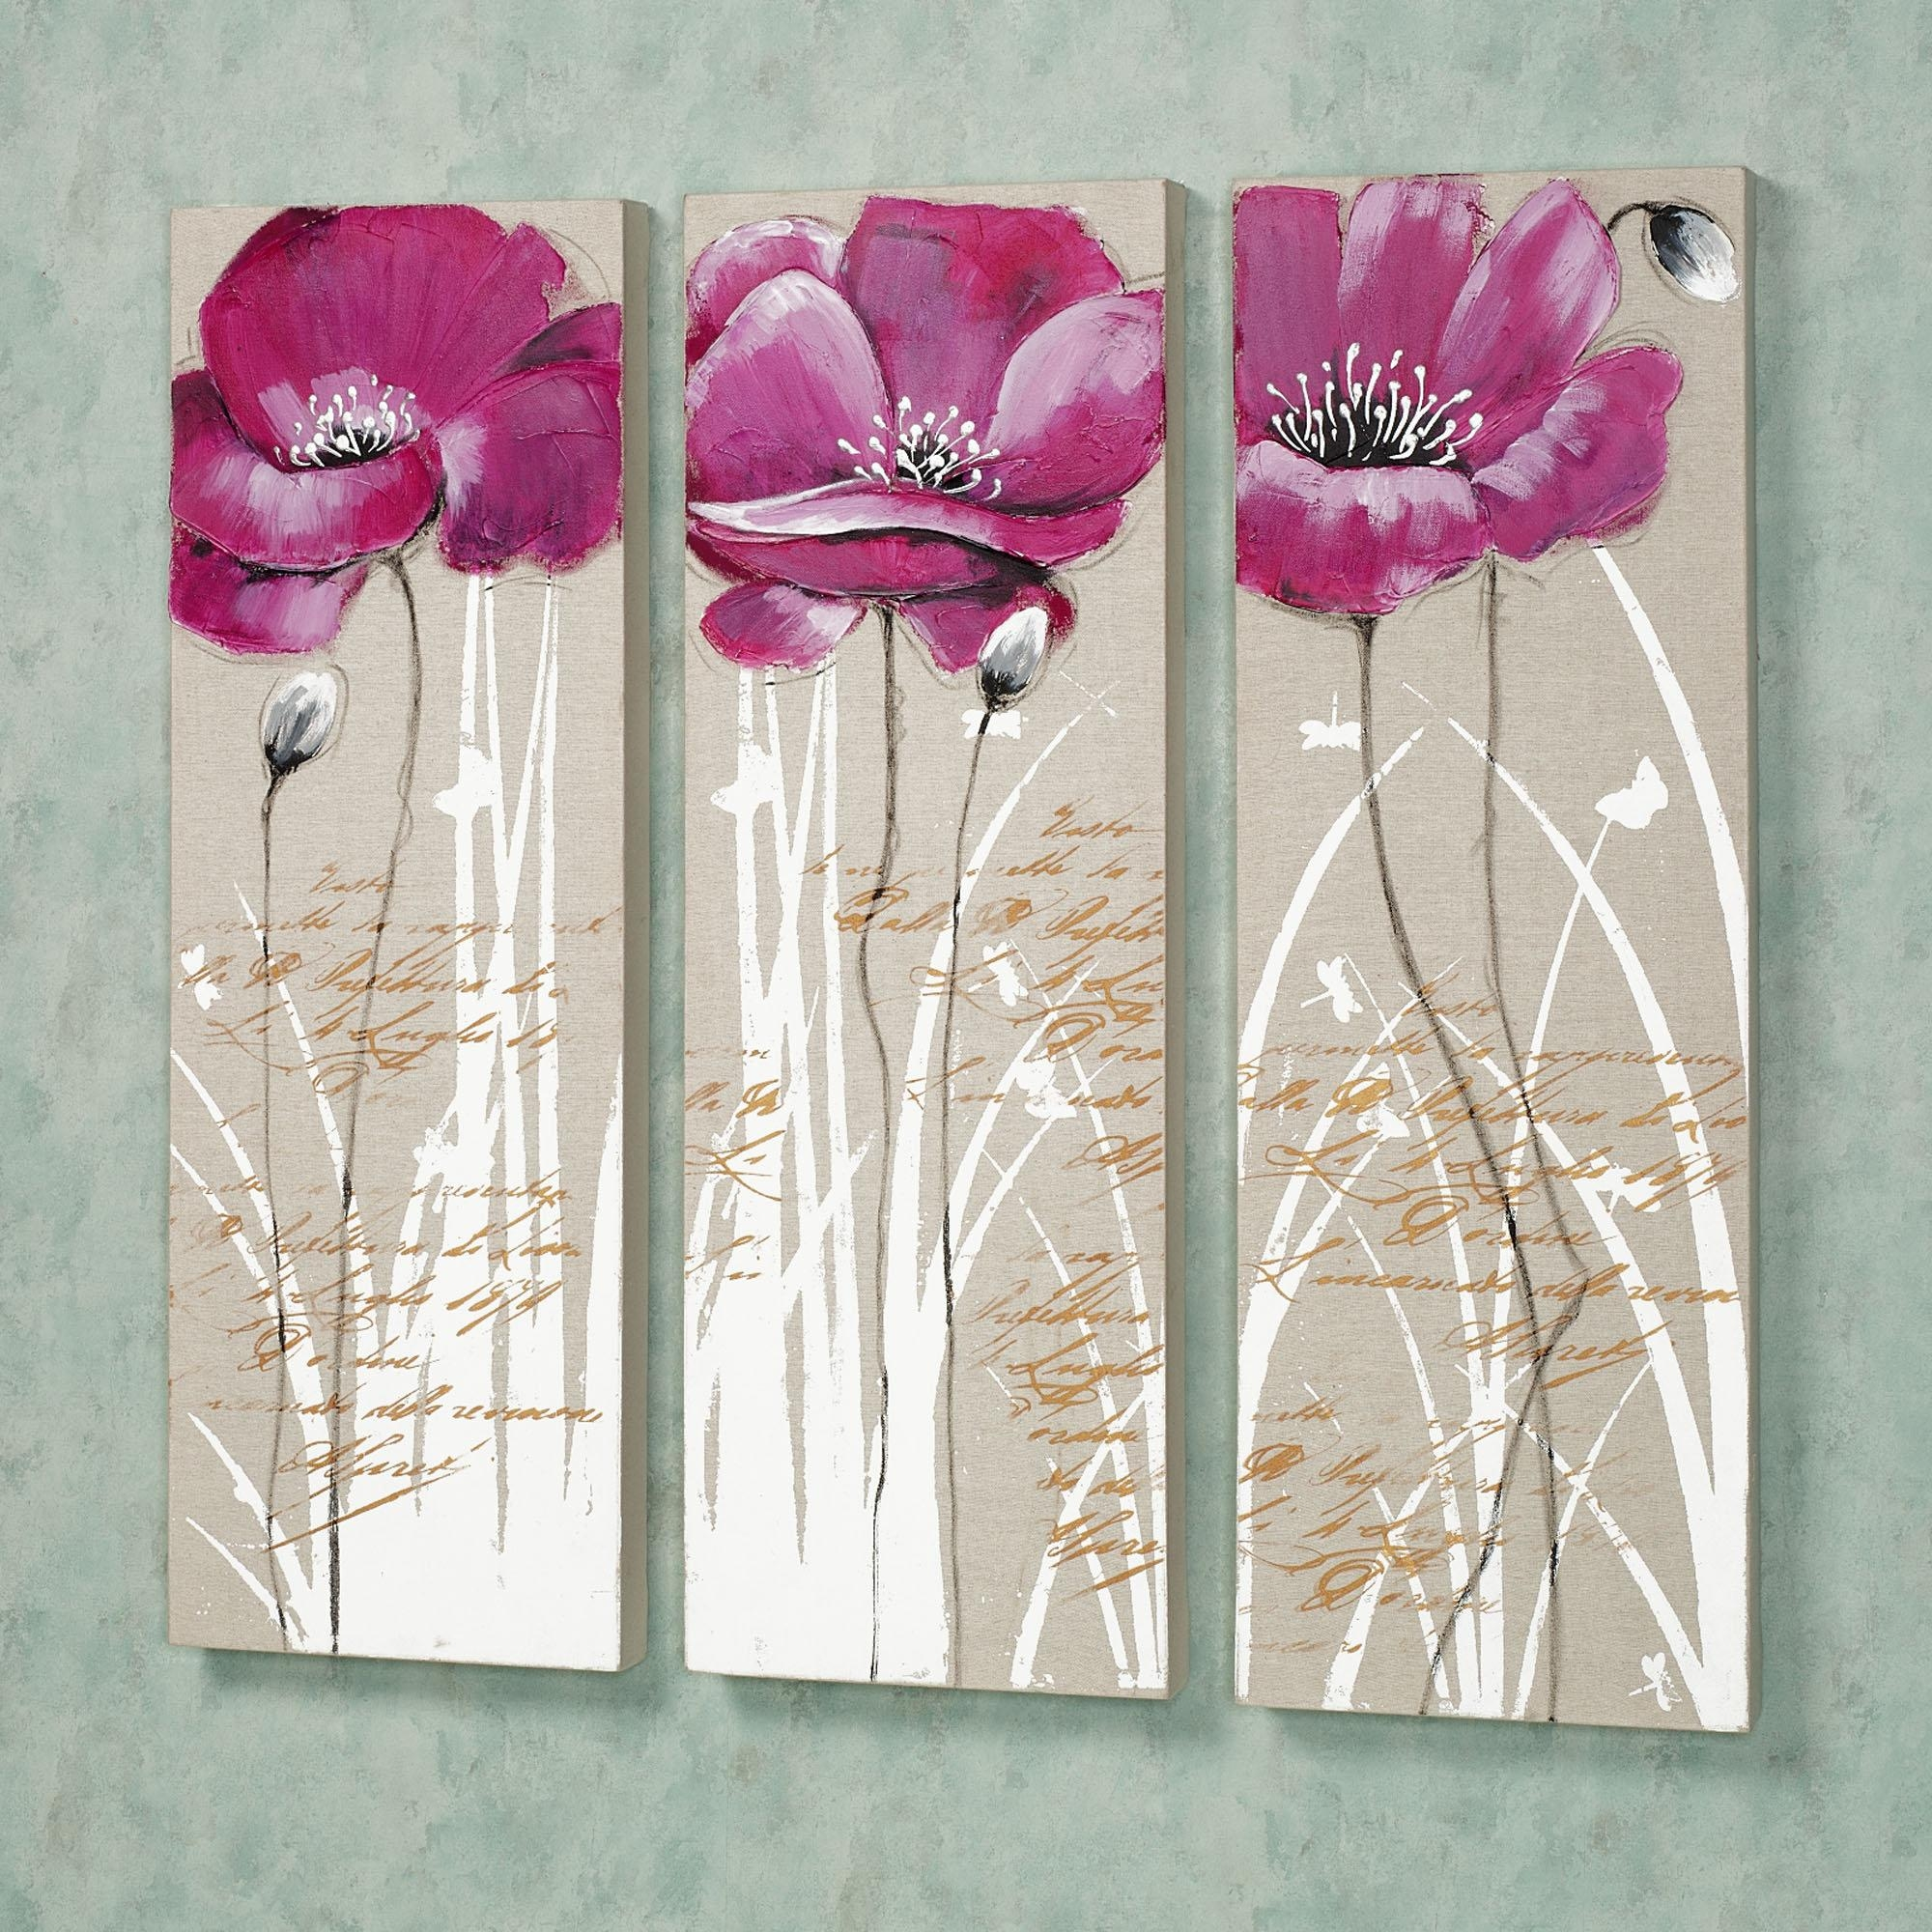 Wall Art Designs: Charming Floral Pictures Pink Flower Canvas Wall Intended For Pink Flower Wall Art (View 3 of 20)